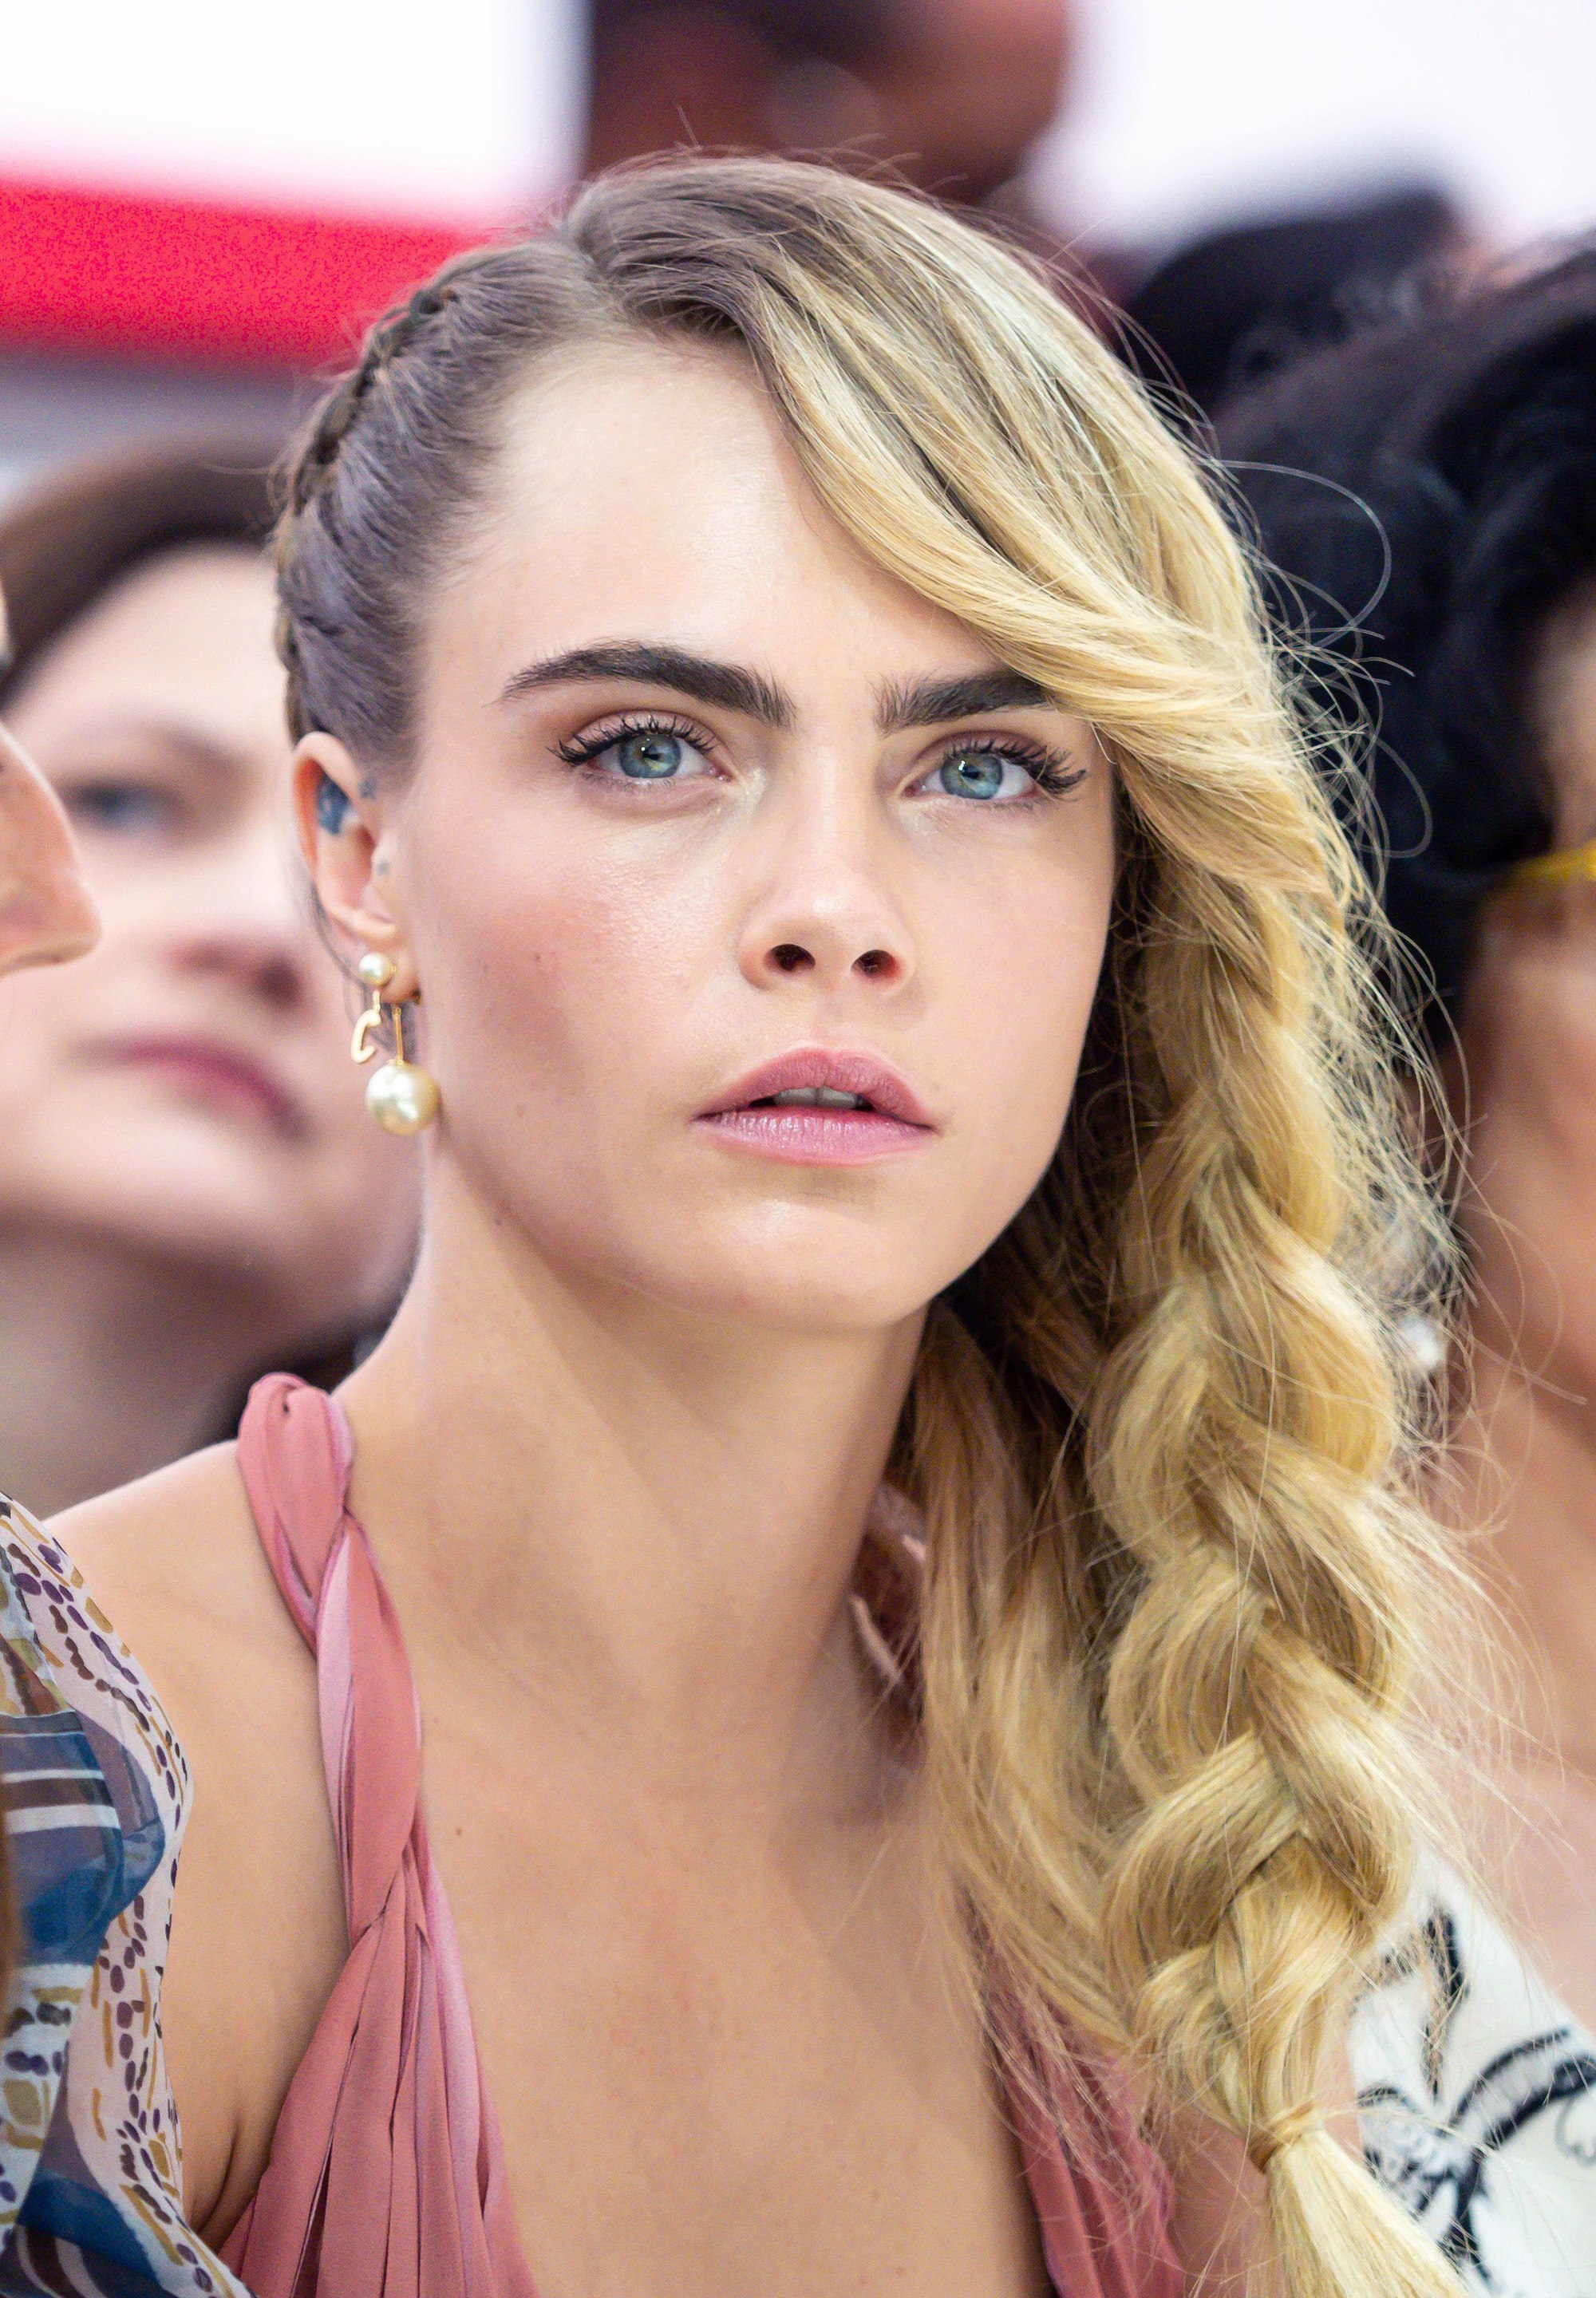 Side hairstyles: Cara Delevingne at Paris Fashion Week AW19 with long blonde hair in a side braid, wearing a pink dress